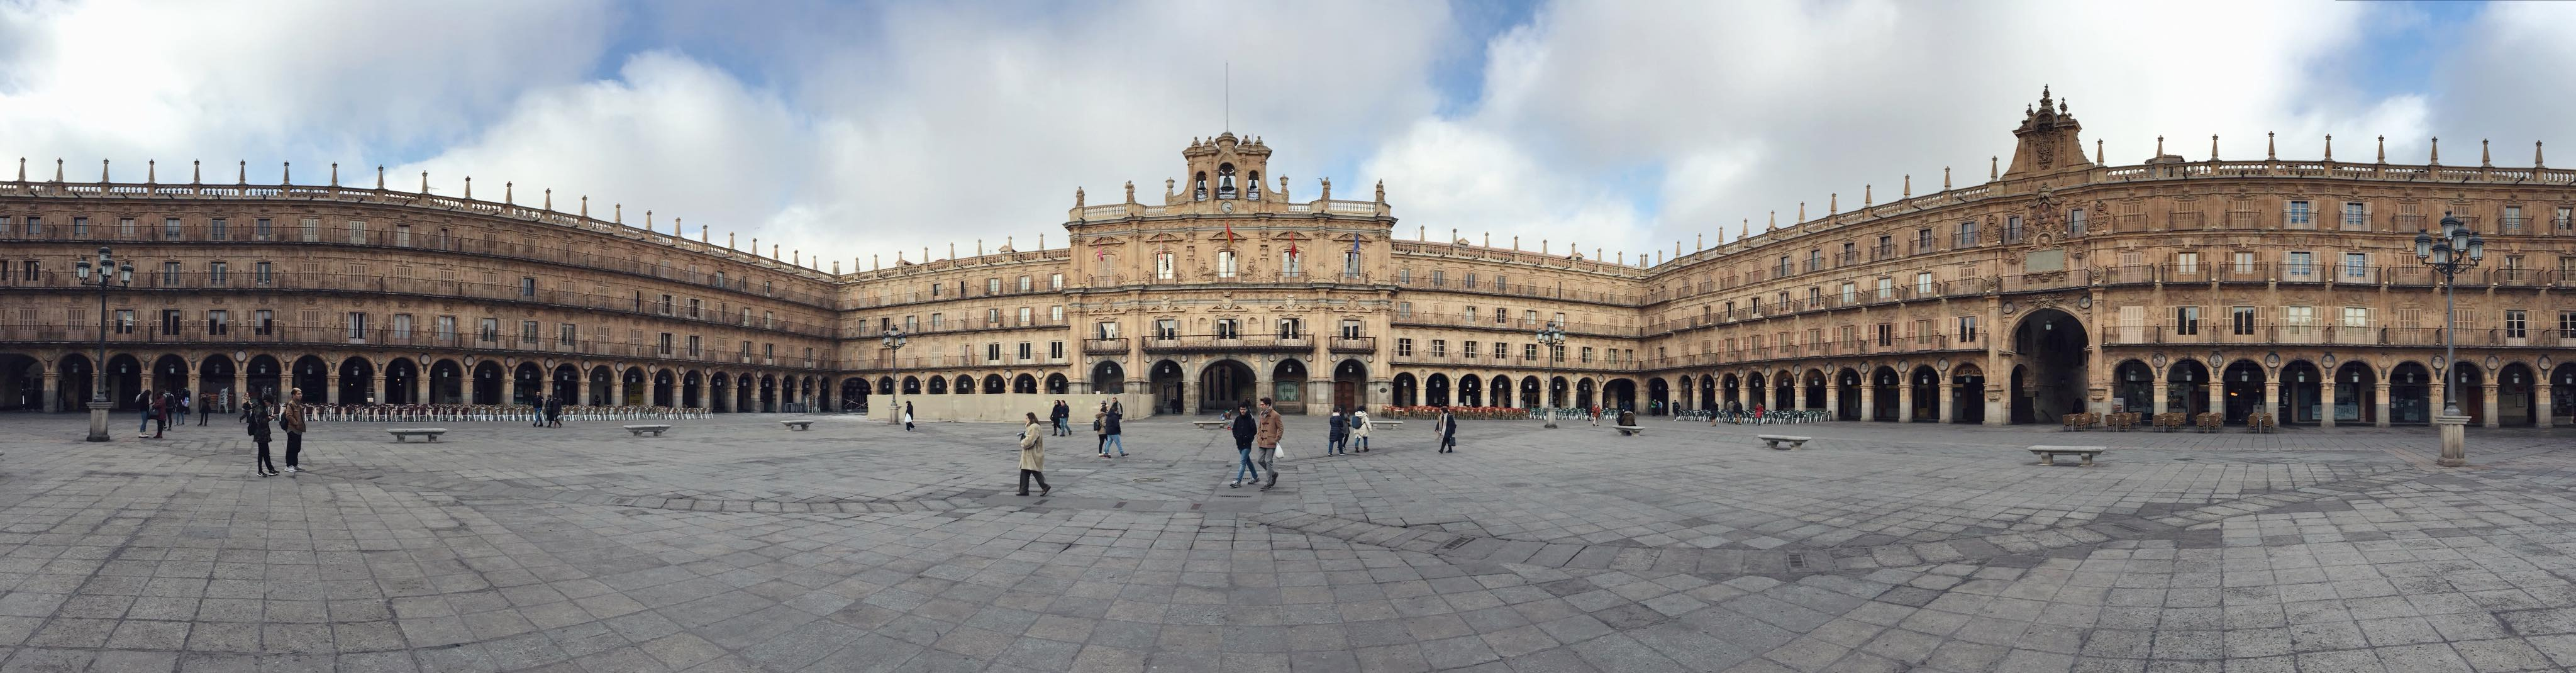 plaza mayor Salamanca 360